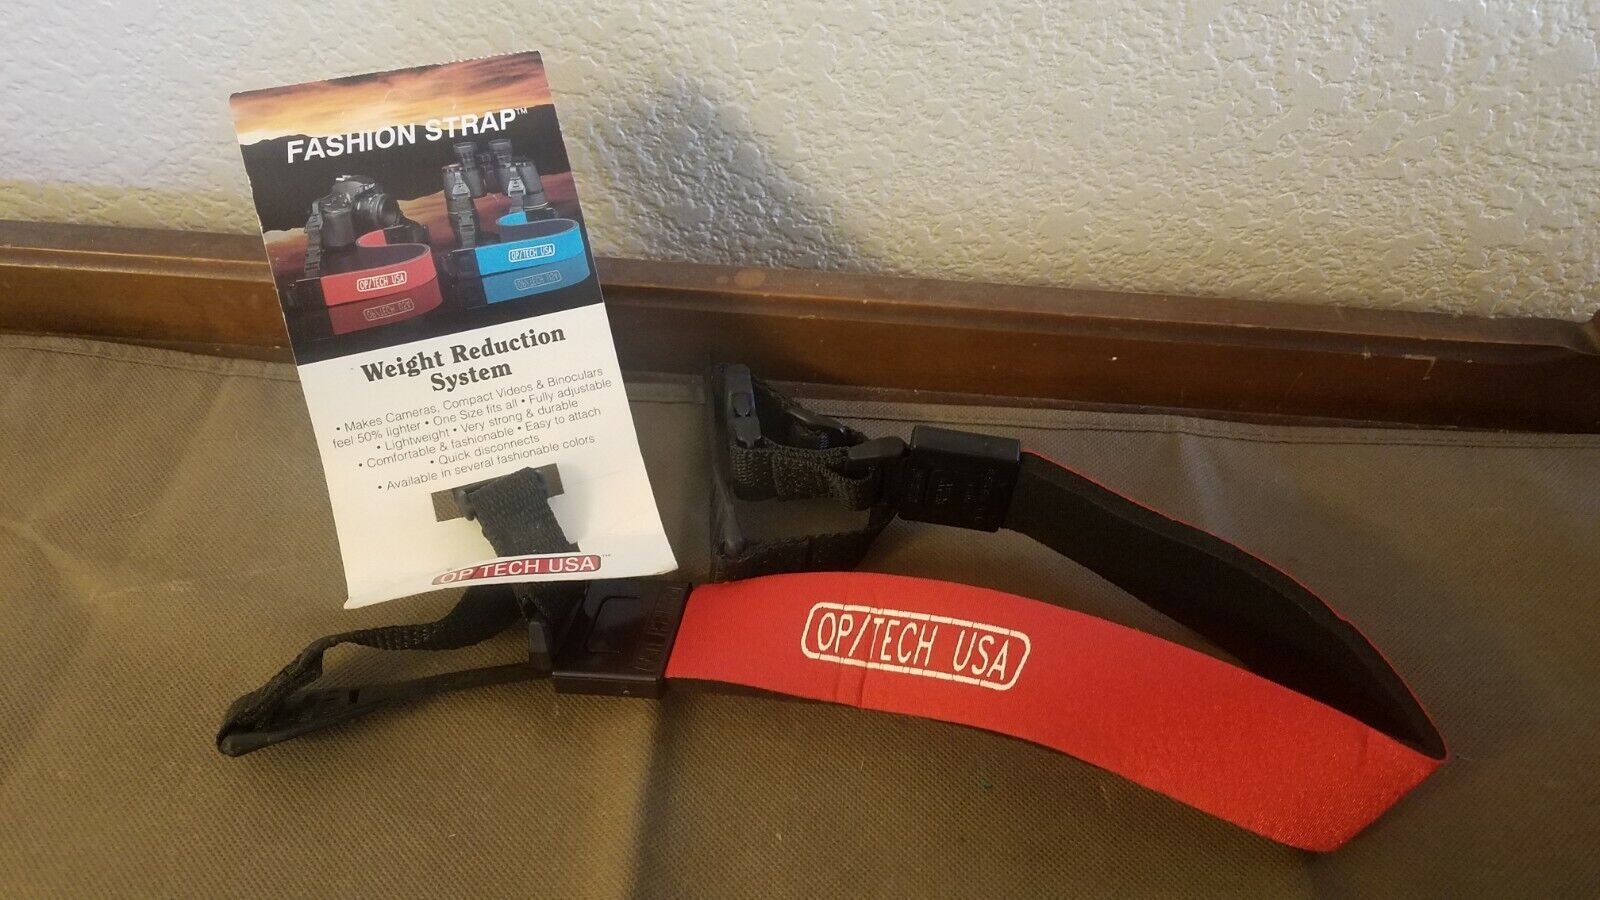 NOS OP/TECH USA Fashion Strap Weight Reduction Strap w/ Quic